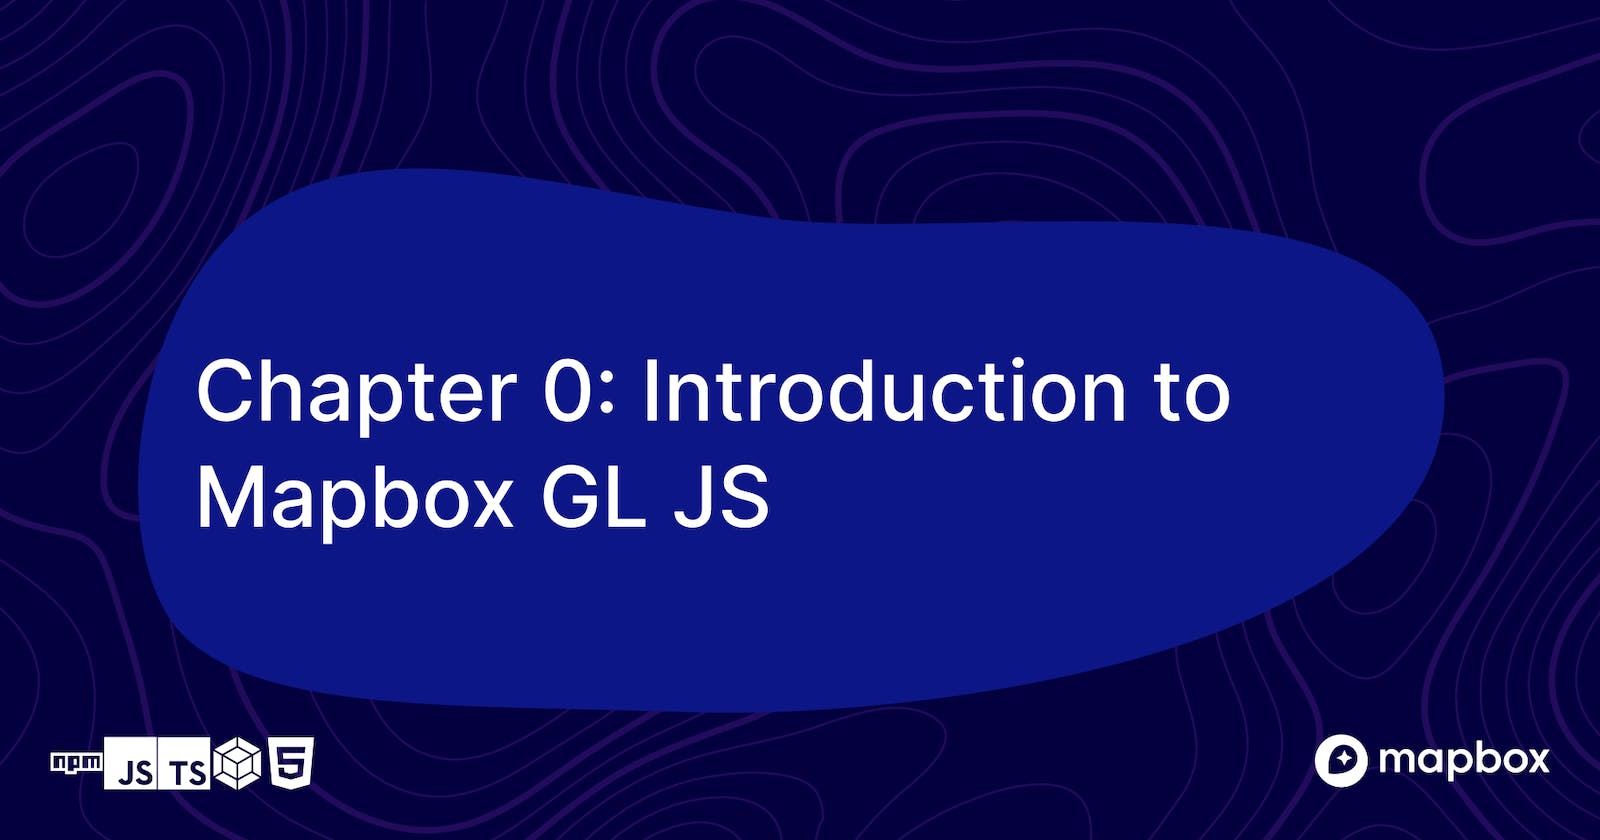 Chapter 0: Introduction to Mapbox GL JS